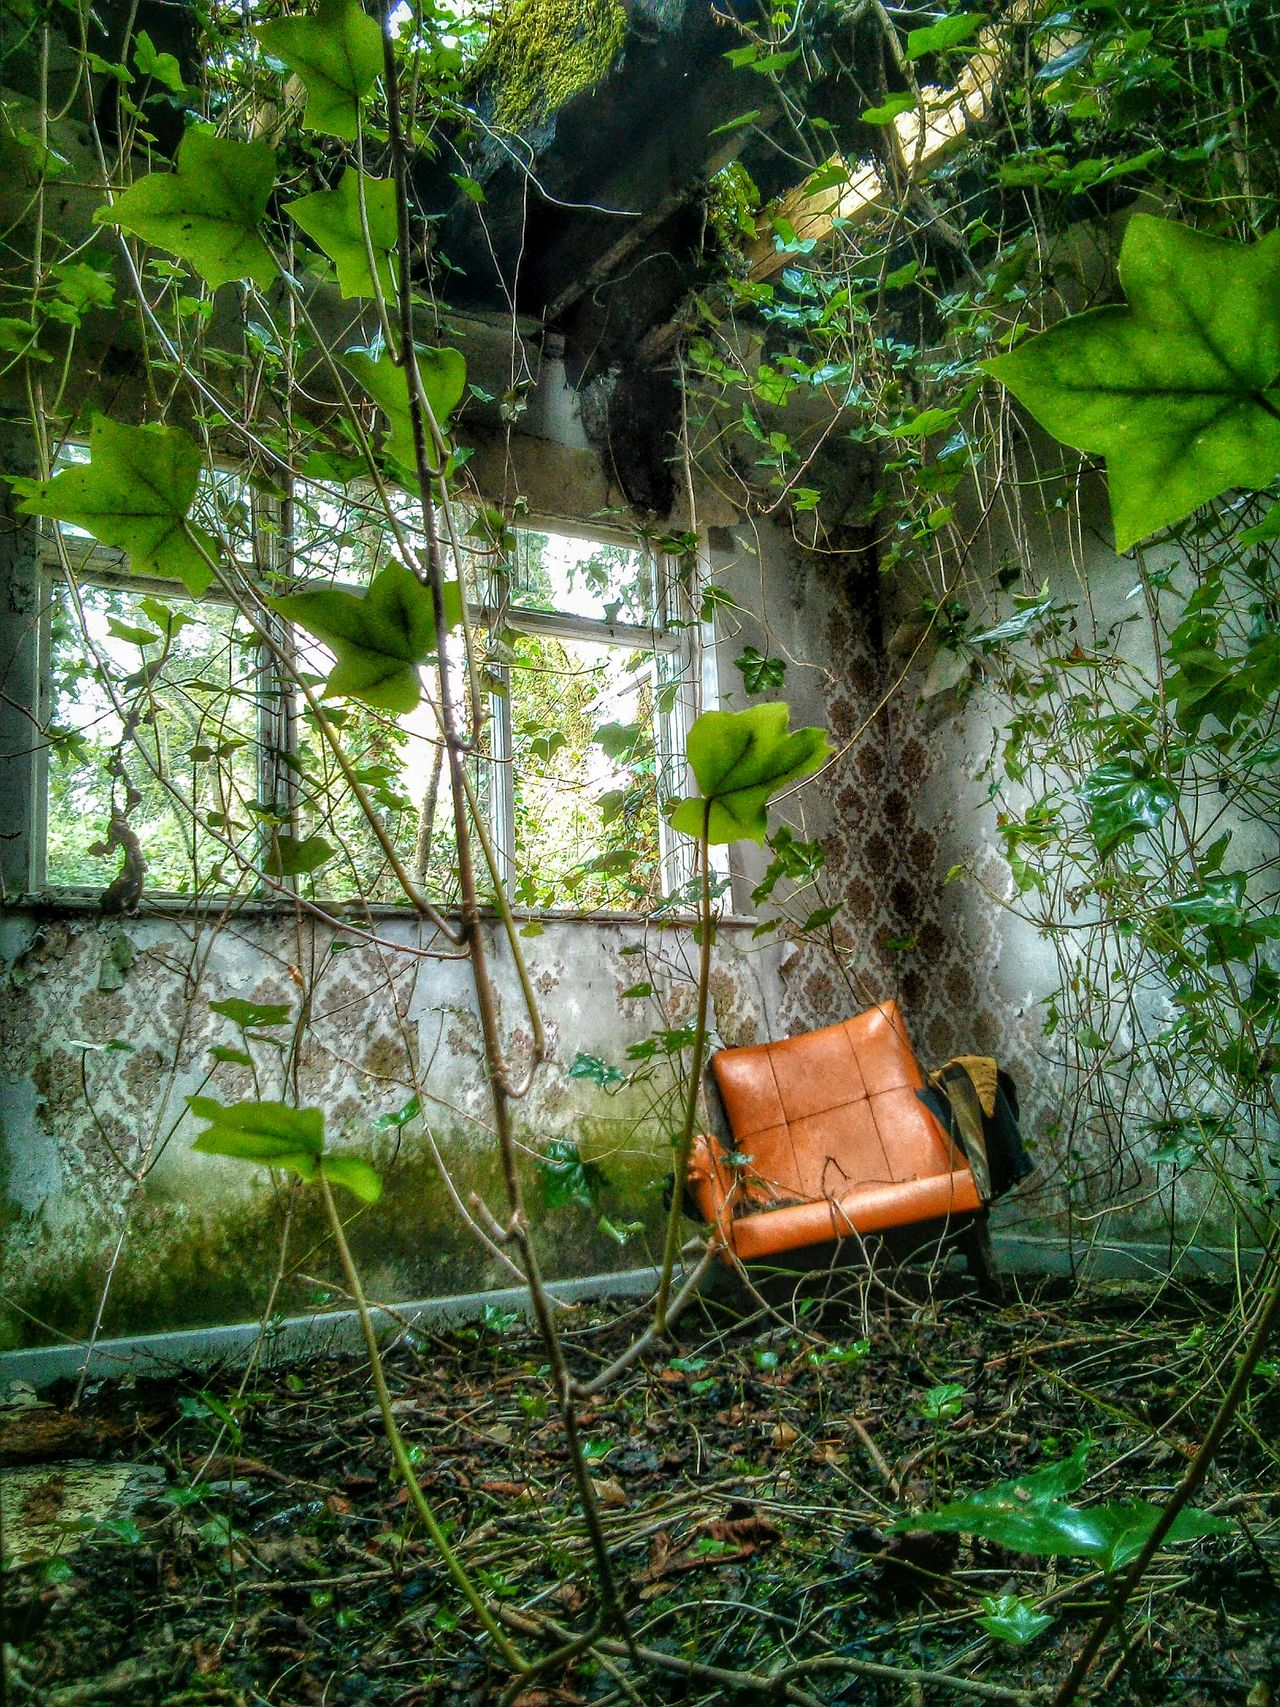 Chair In Room Abandoned Derilict Ivy Vines Retro Styled Orange Chair Distressed Broken Window Hole In Roof State Of Disrepair Original Experiences 43 Golden Moments The Innovator Feel The Journey Showcase June Fine Art Photography Home Is Where The Art Is Hidden Gems  Eyeemphoto Pivotal Ideas Color Palette TakeoverContrast The Secret Spaces Art Is Everywhere Break The Mold TCPM The Photojournalist - 2017 EyeEm Awards The Great Outdoors - 2017 EyeEm Awards The Architect - 2017 EyeEm Awards BYOPaper! Live For The Story Place Of Heart